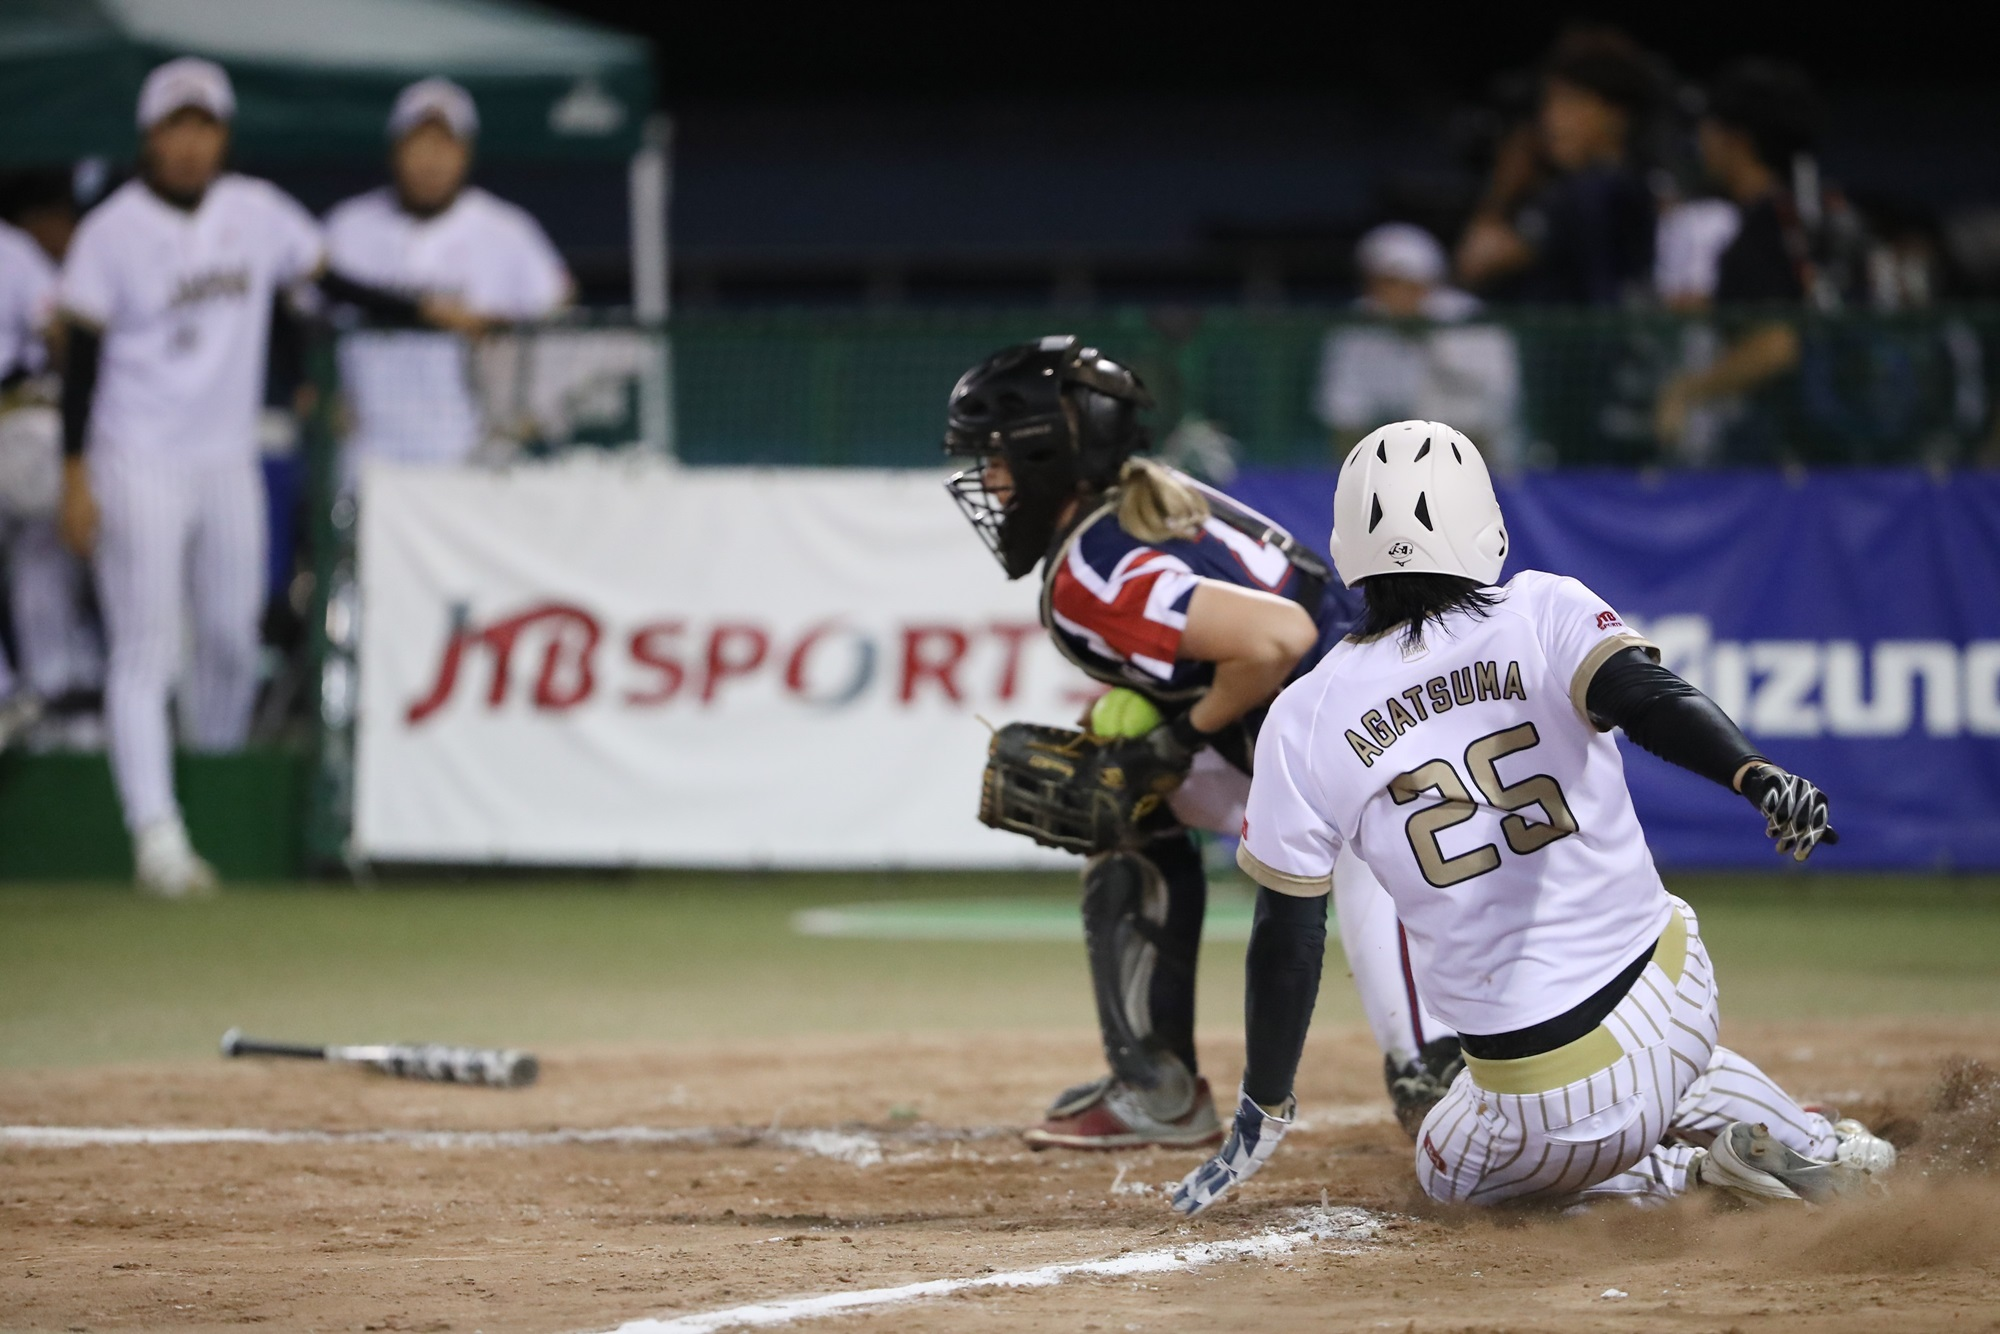 Japan's Haruka Agatsuma slides to avoid a tag from Kirsten Mack of Great Britain